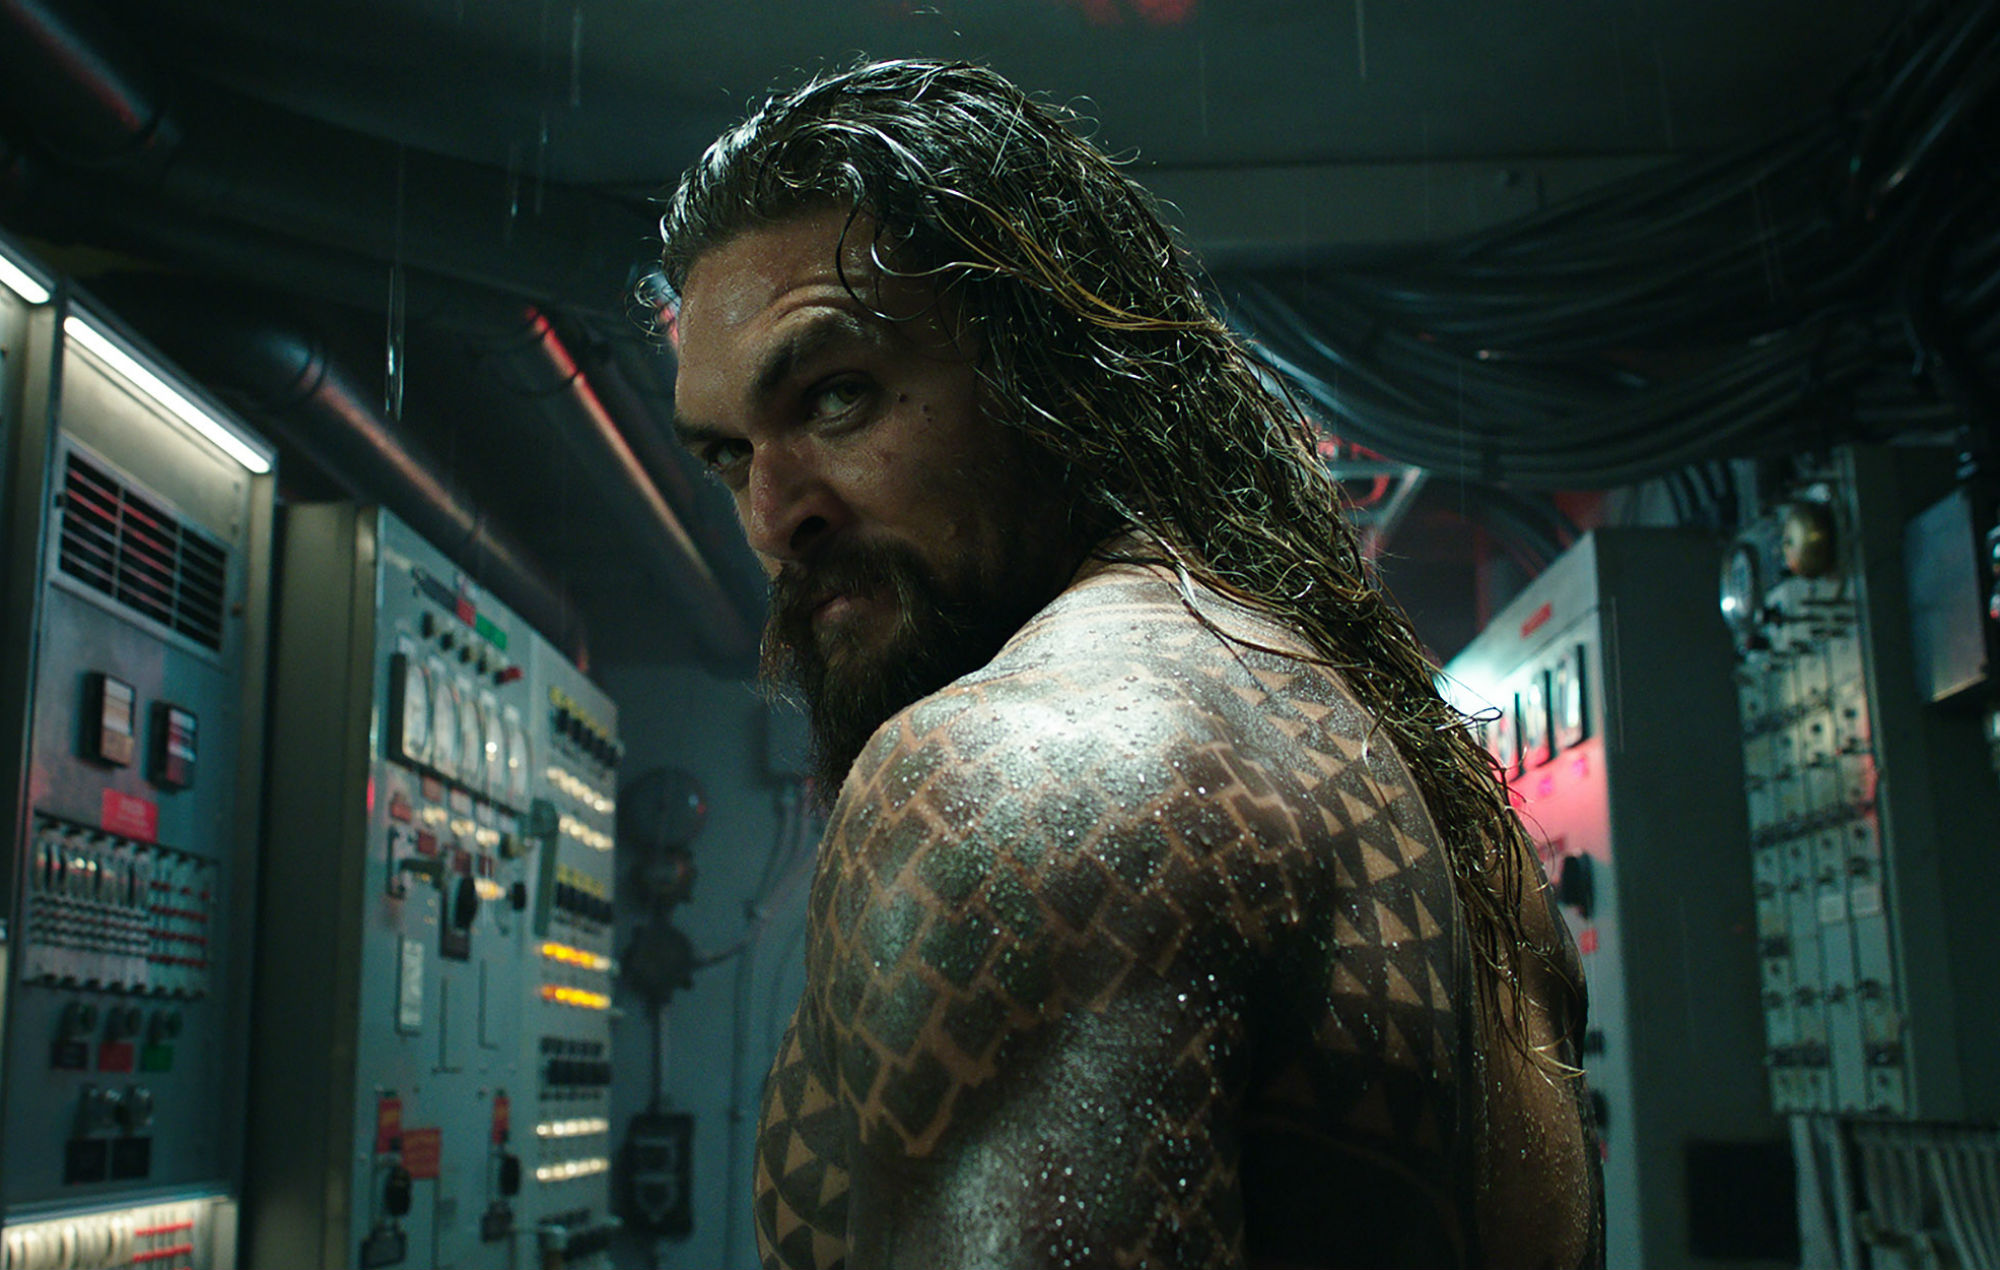 Aquaman 2 officially confirmed